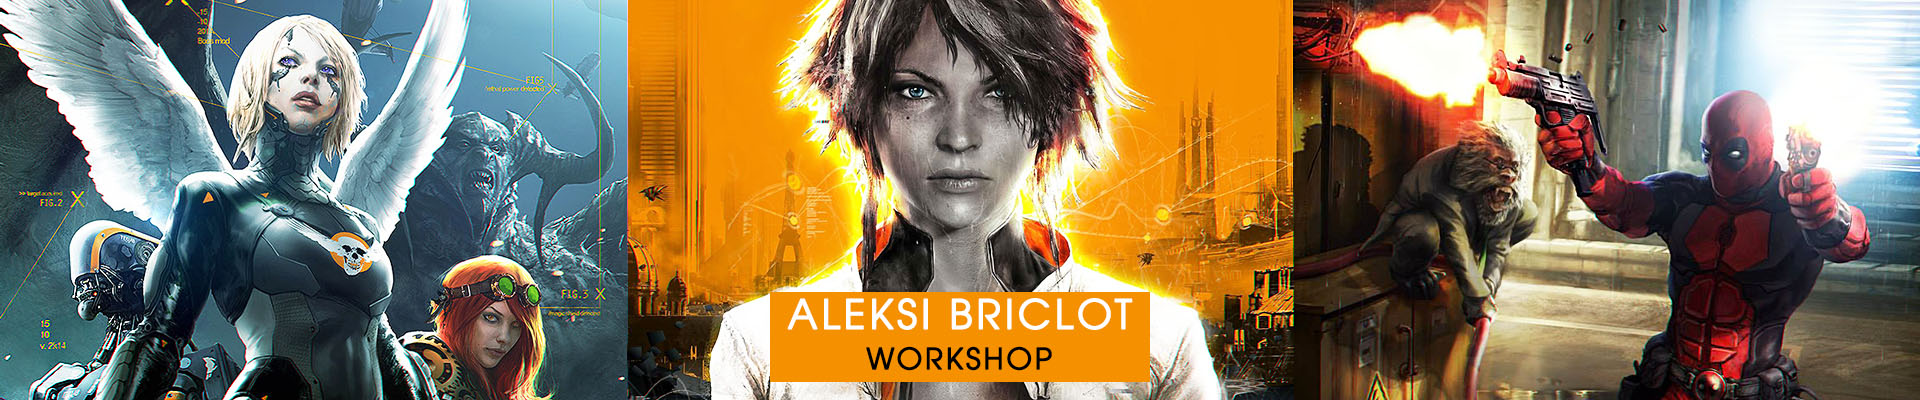 Aleksi_Briclot_Workshop